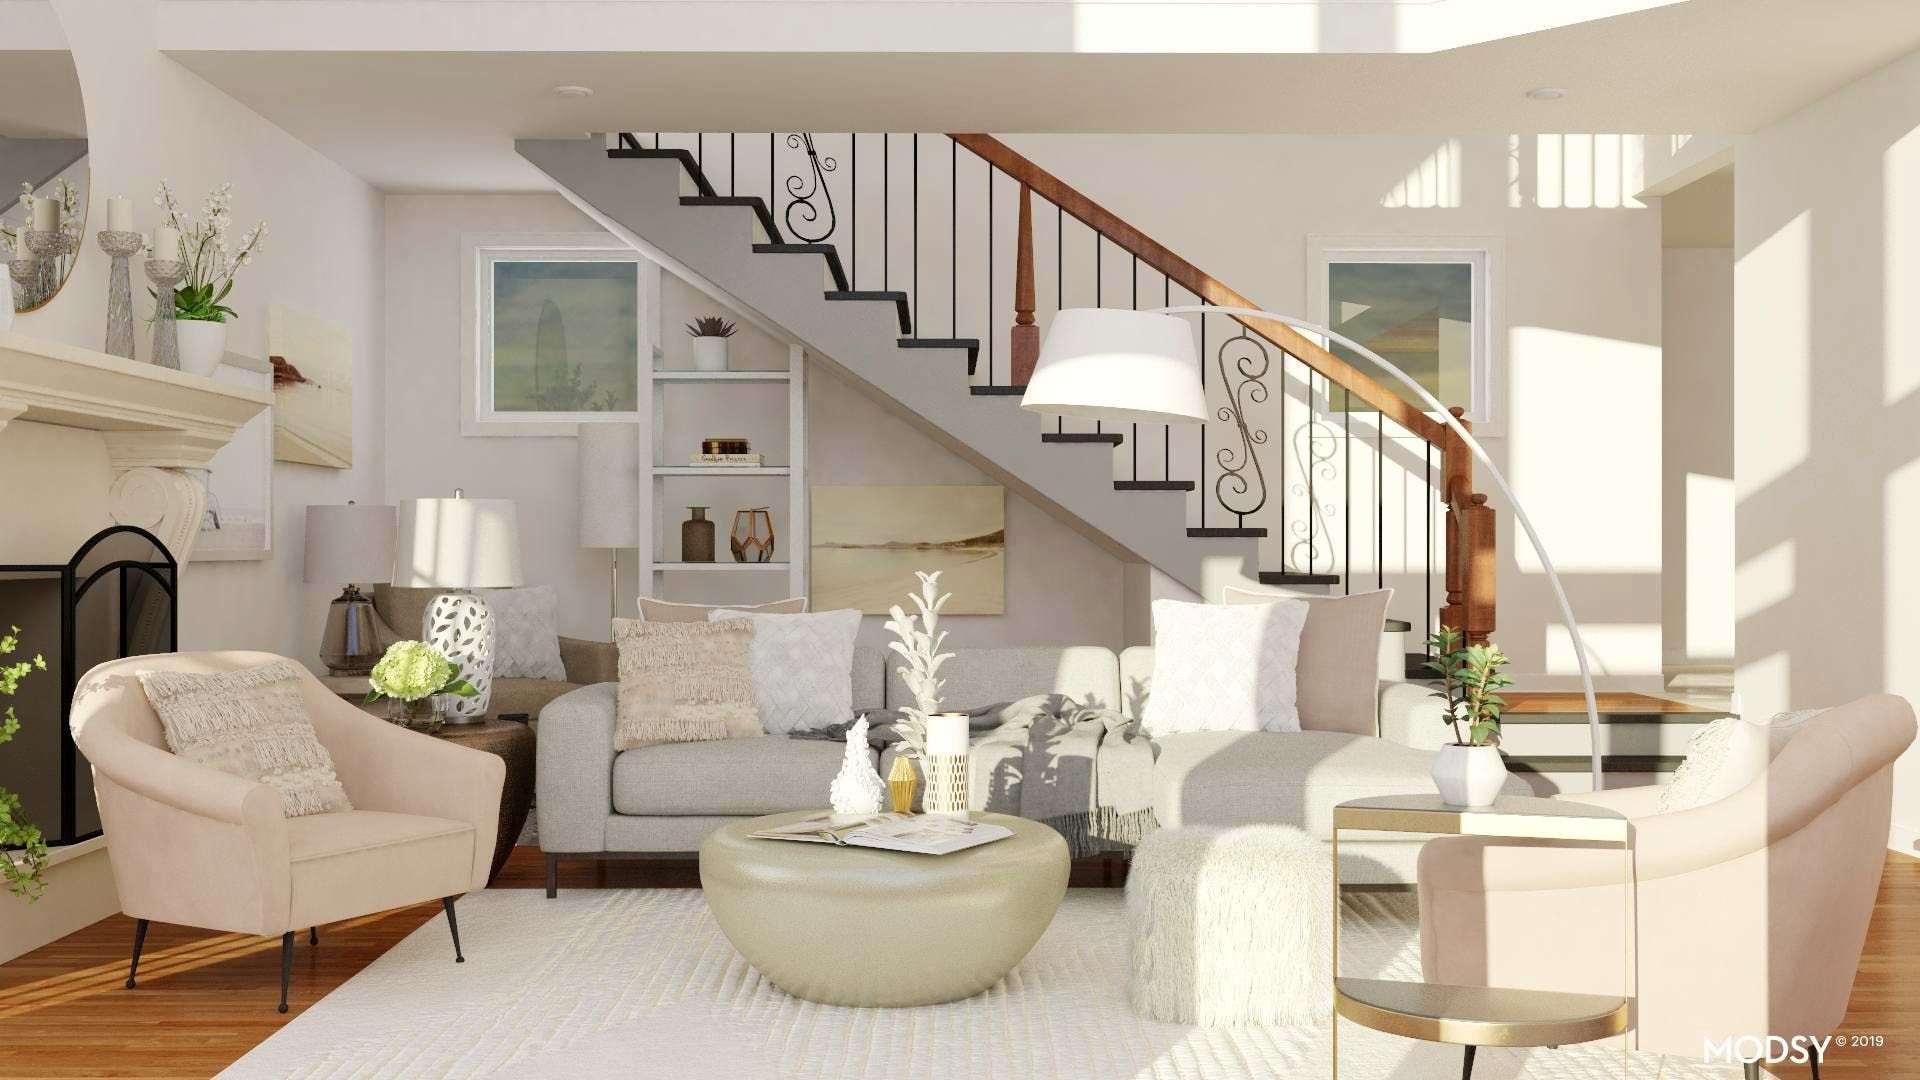 Design Ideas And Styles From Modsy Designers In